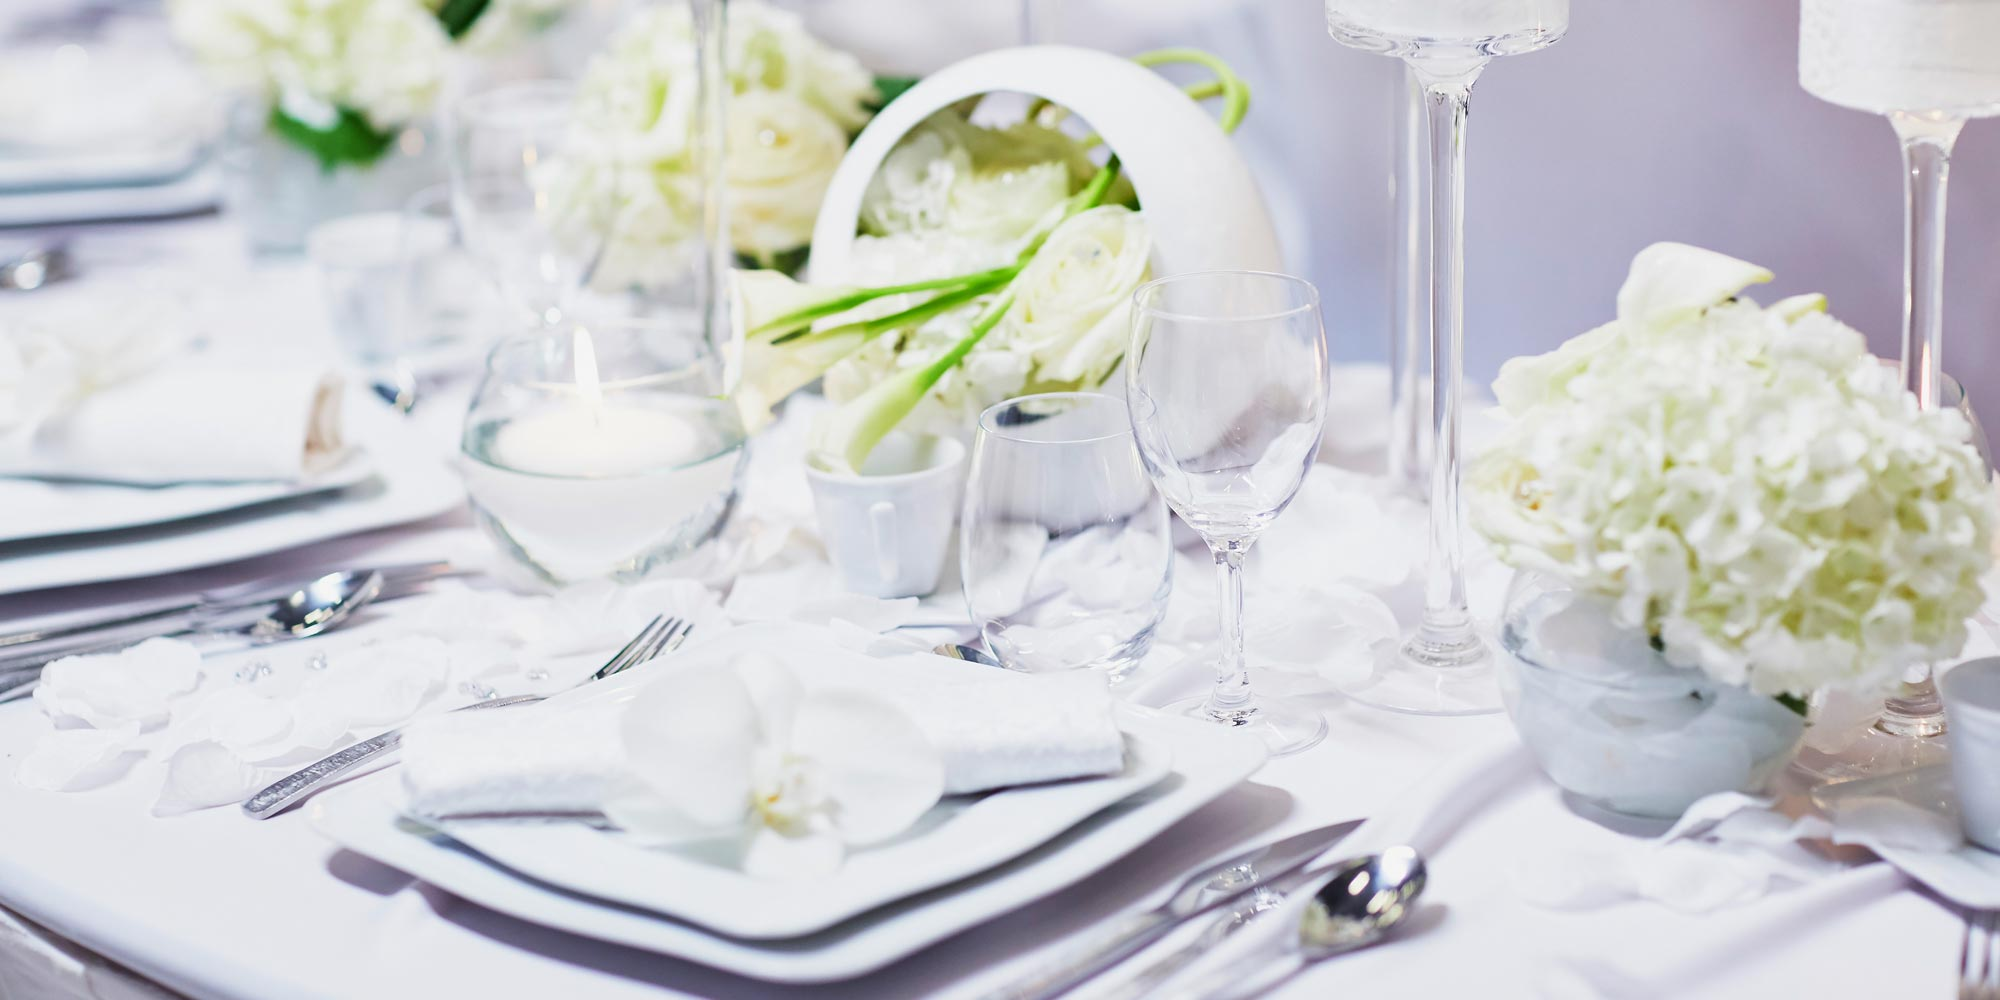 Limeberry Events Catering specialise in catering for weddings